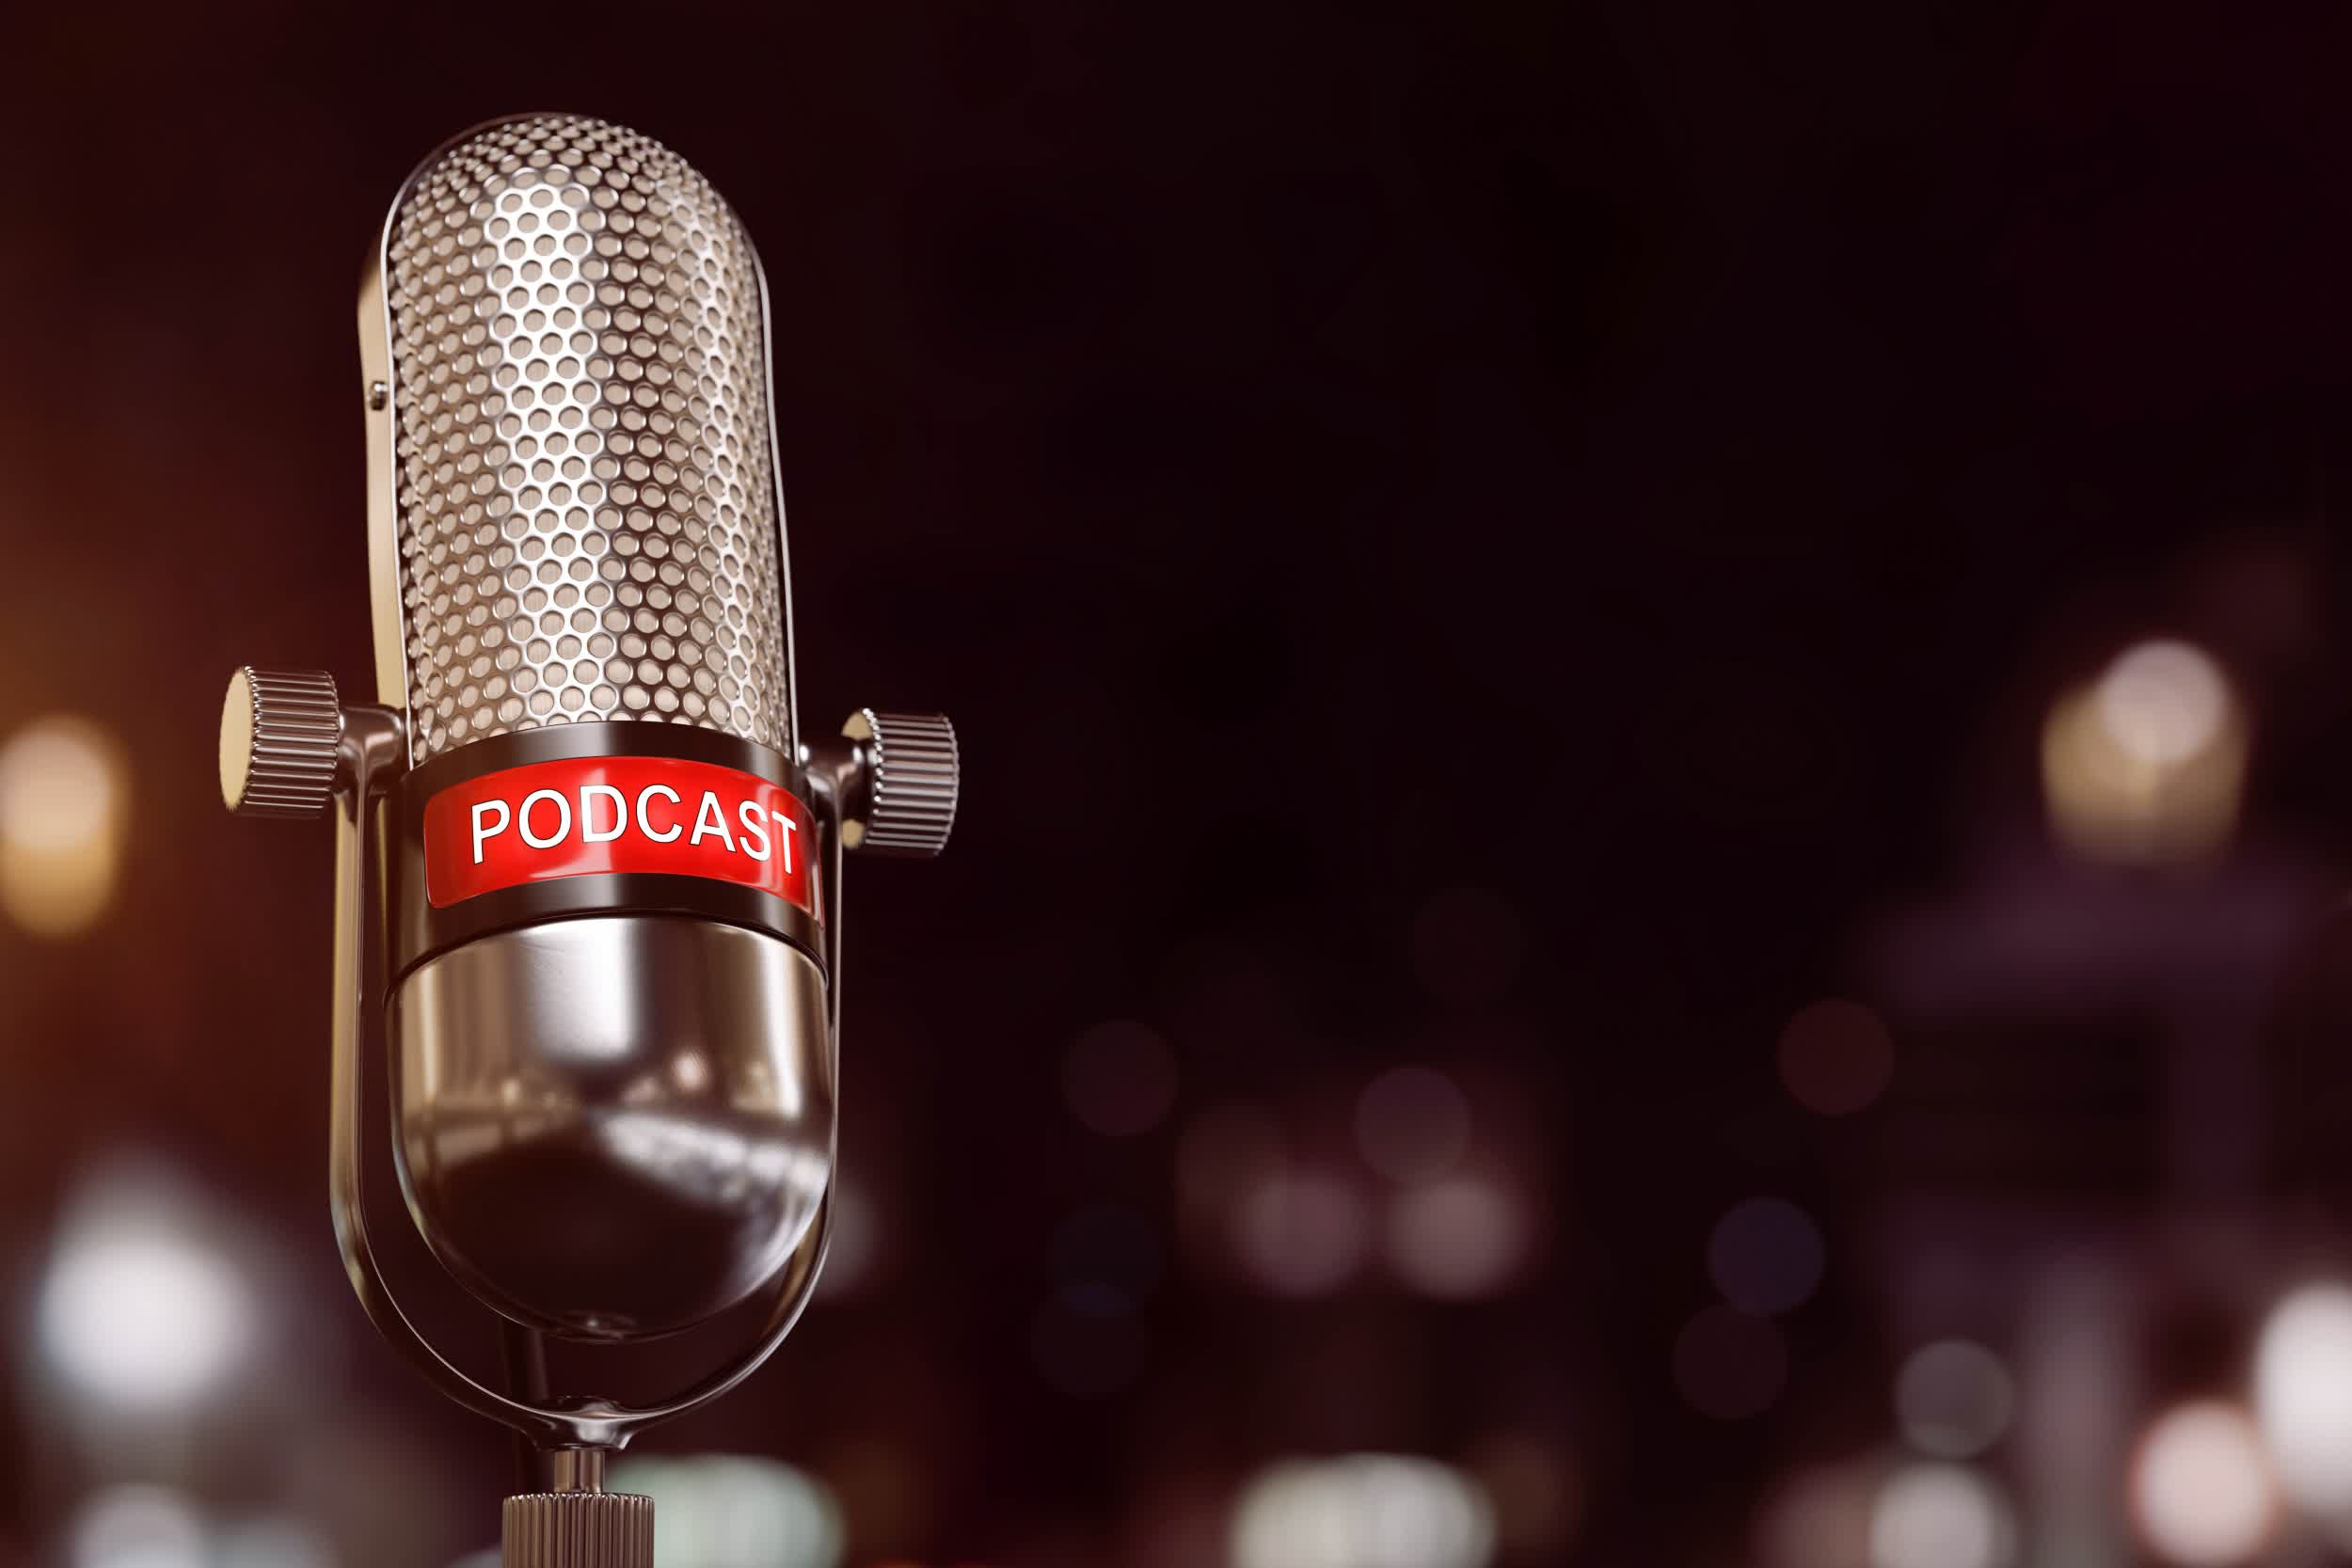 Amazon Music adds podcasts at no extra cost in major markets